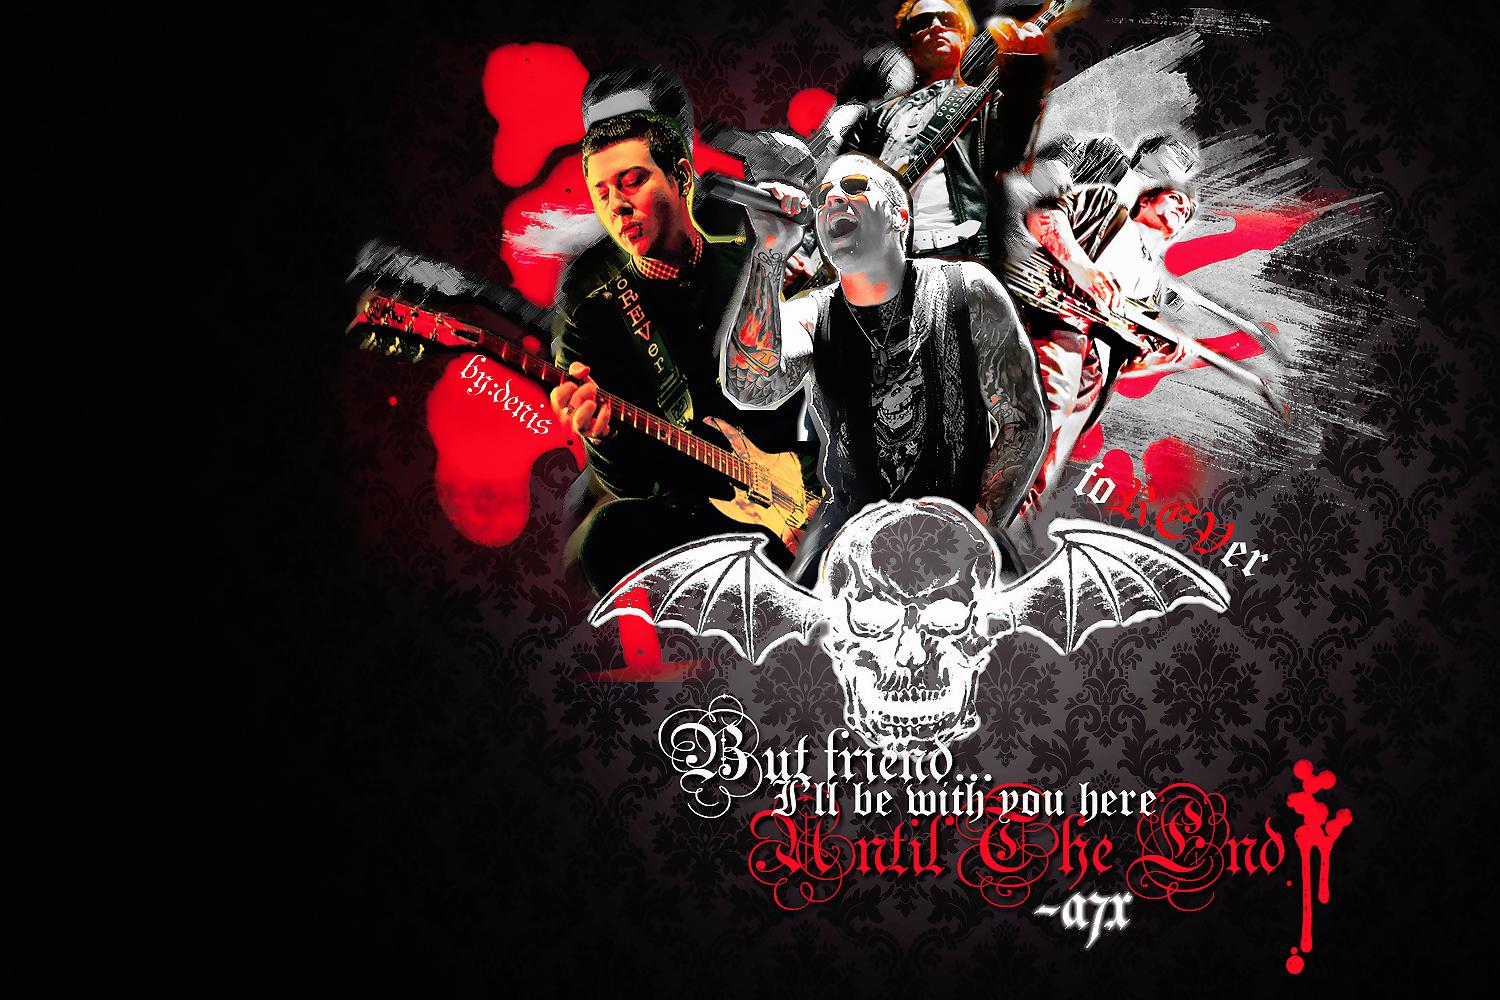 Avenged Sevenfold Wallpaper HD Download